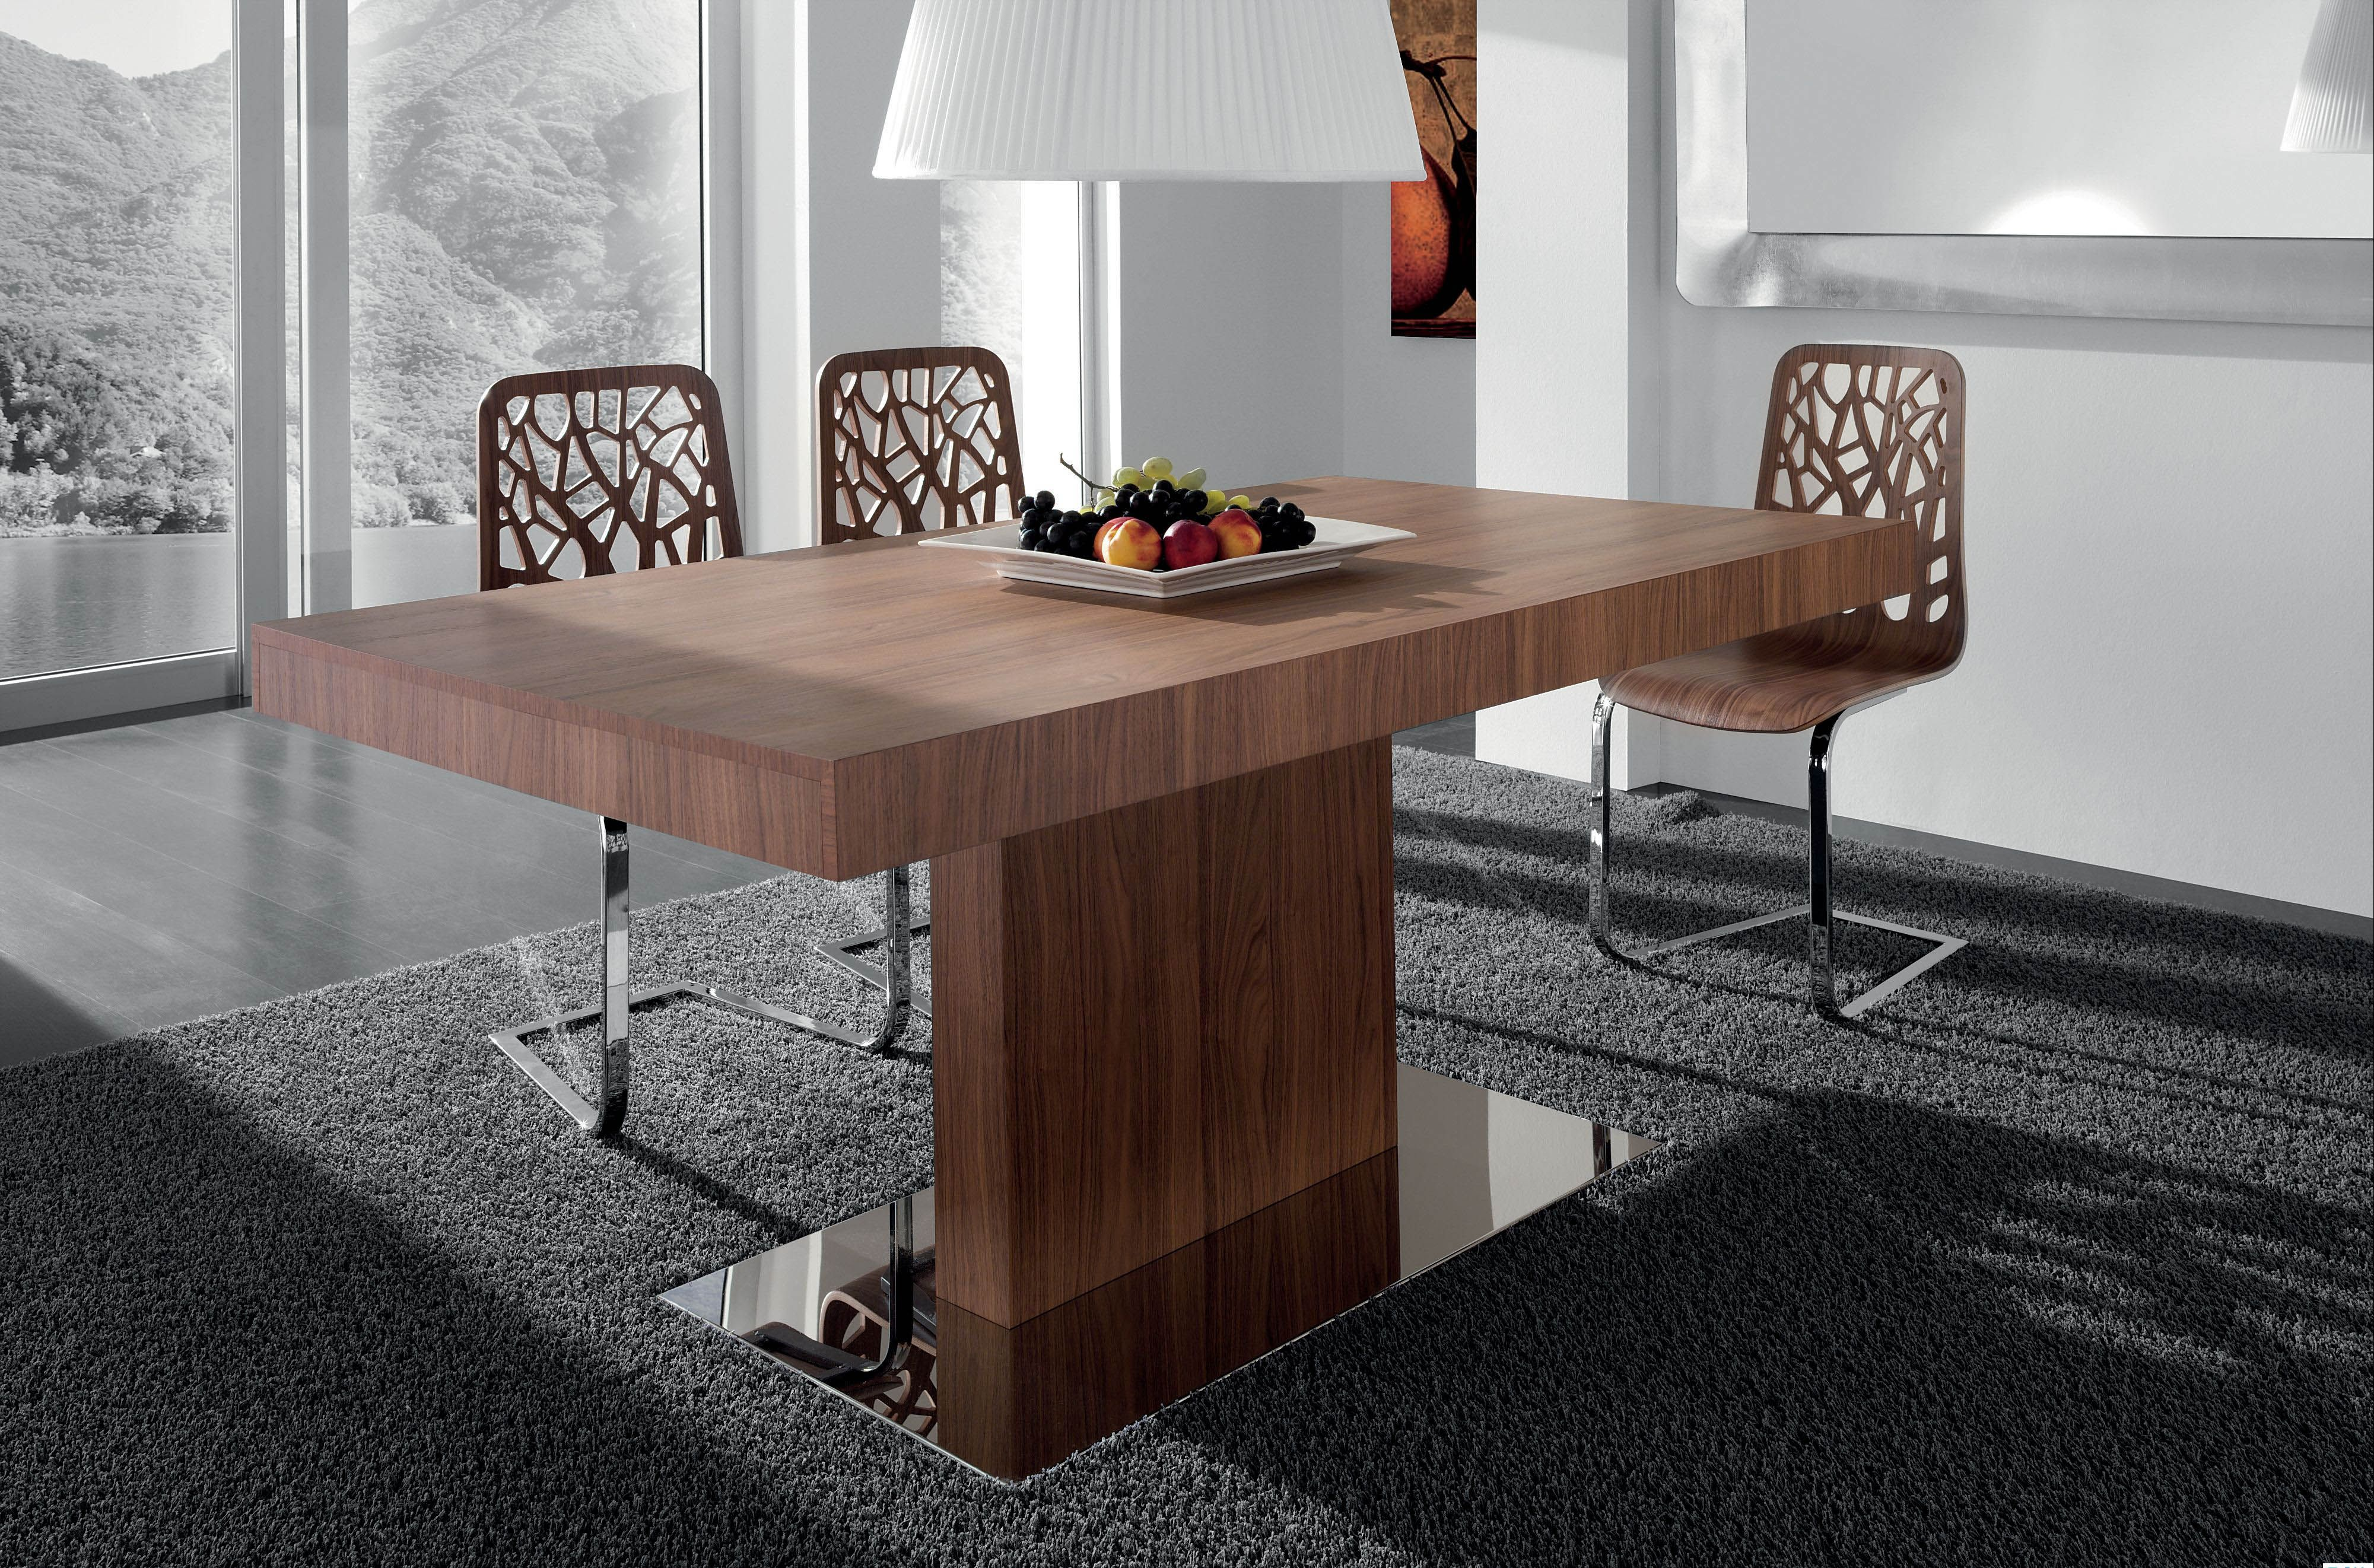 Modern Extendable Dining Table in Oak Walnut Veneer Finish with Chairs Set & Modern Extendable Dining Table in Oak Walnut Veneer Finish with ...